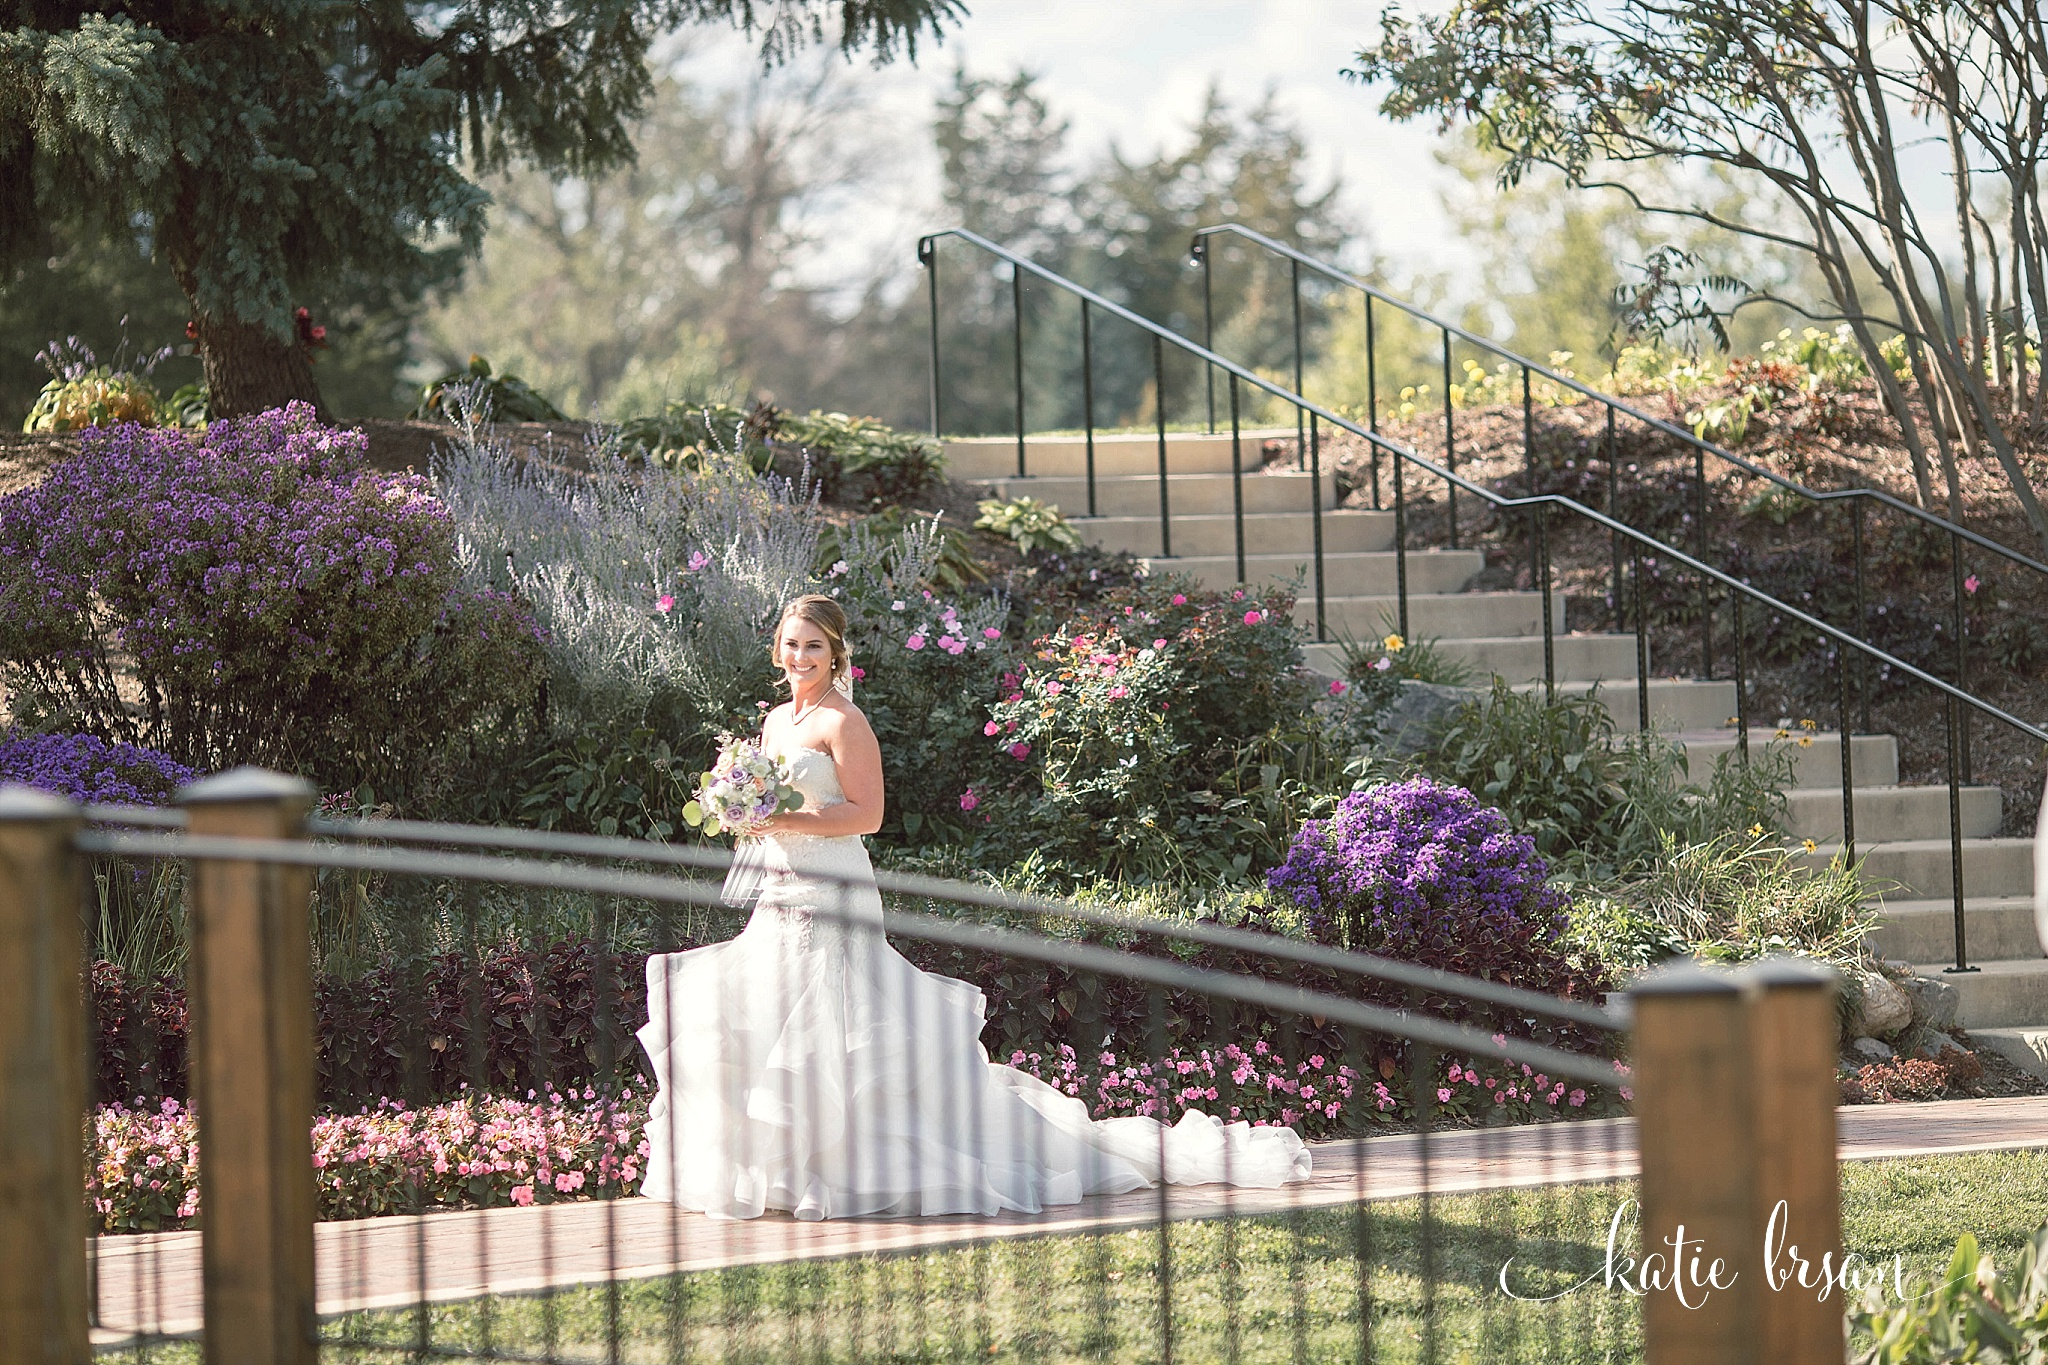 Fishermen'sInn_Wedding_Elburn_Chicago_Wedding_Photographer_1035.jpg